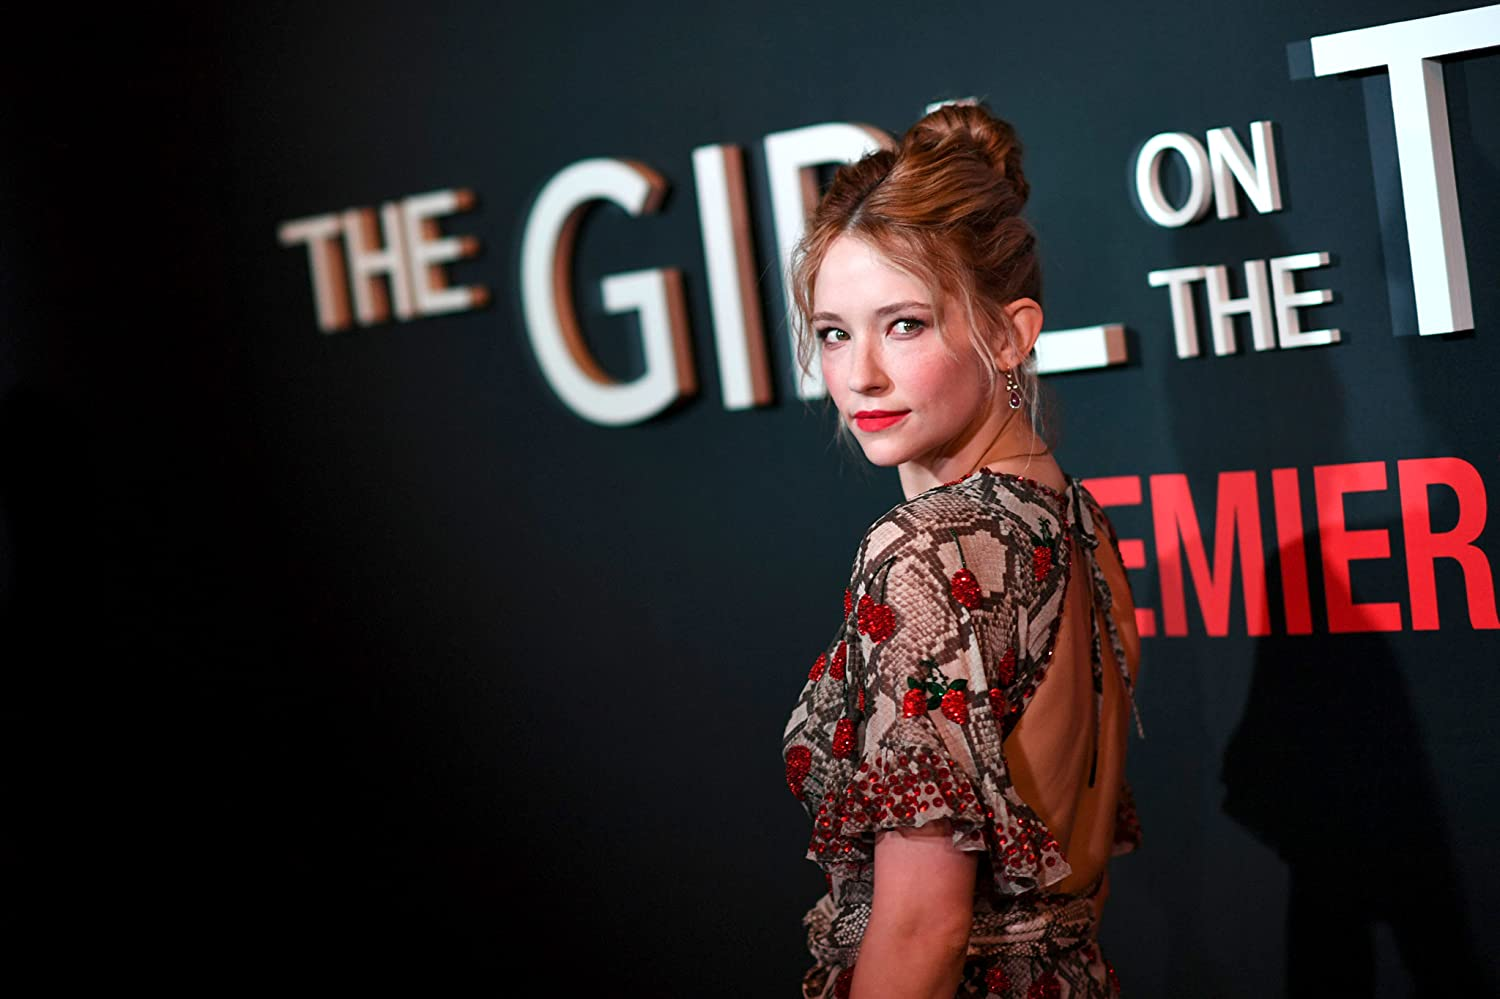 Haley Bennett at an event for The Girl on the Train (2016)